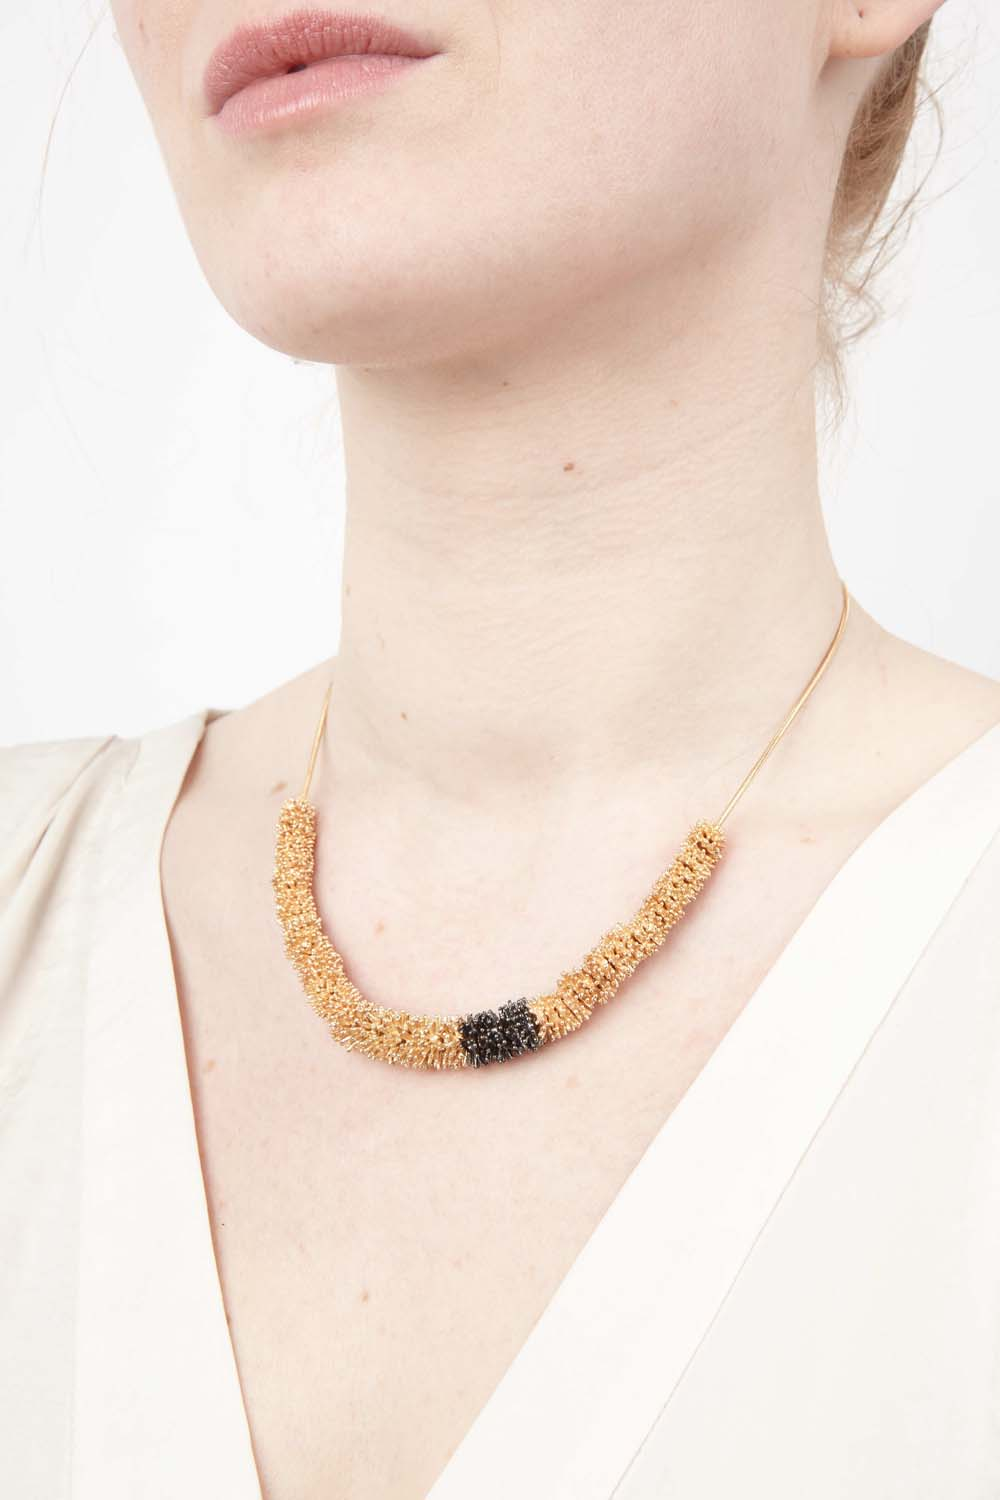 Gone To Seed Necklace - Two Tone